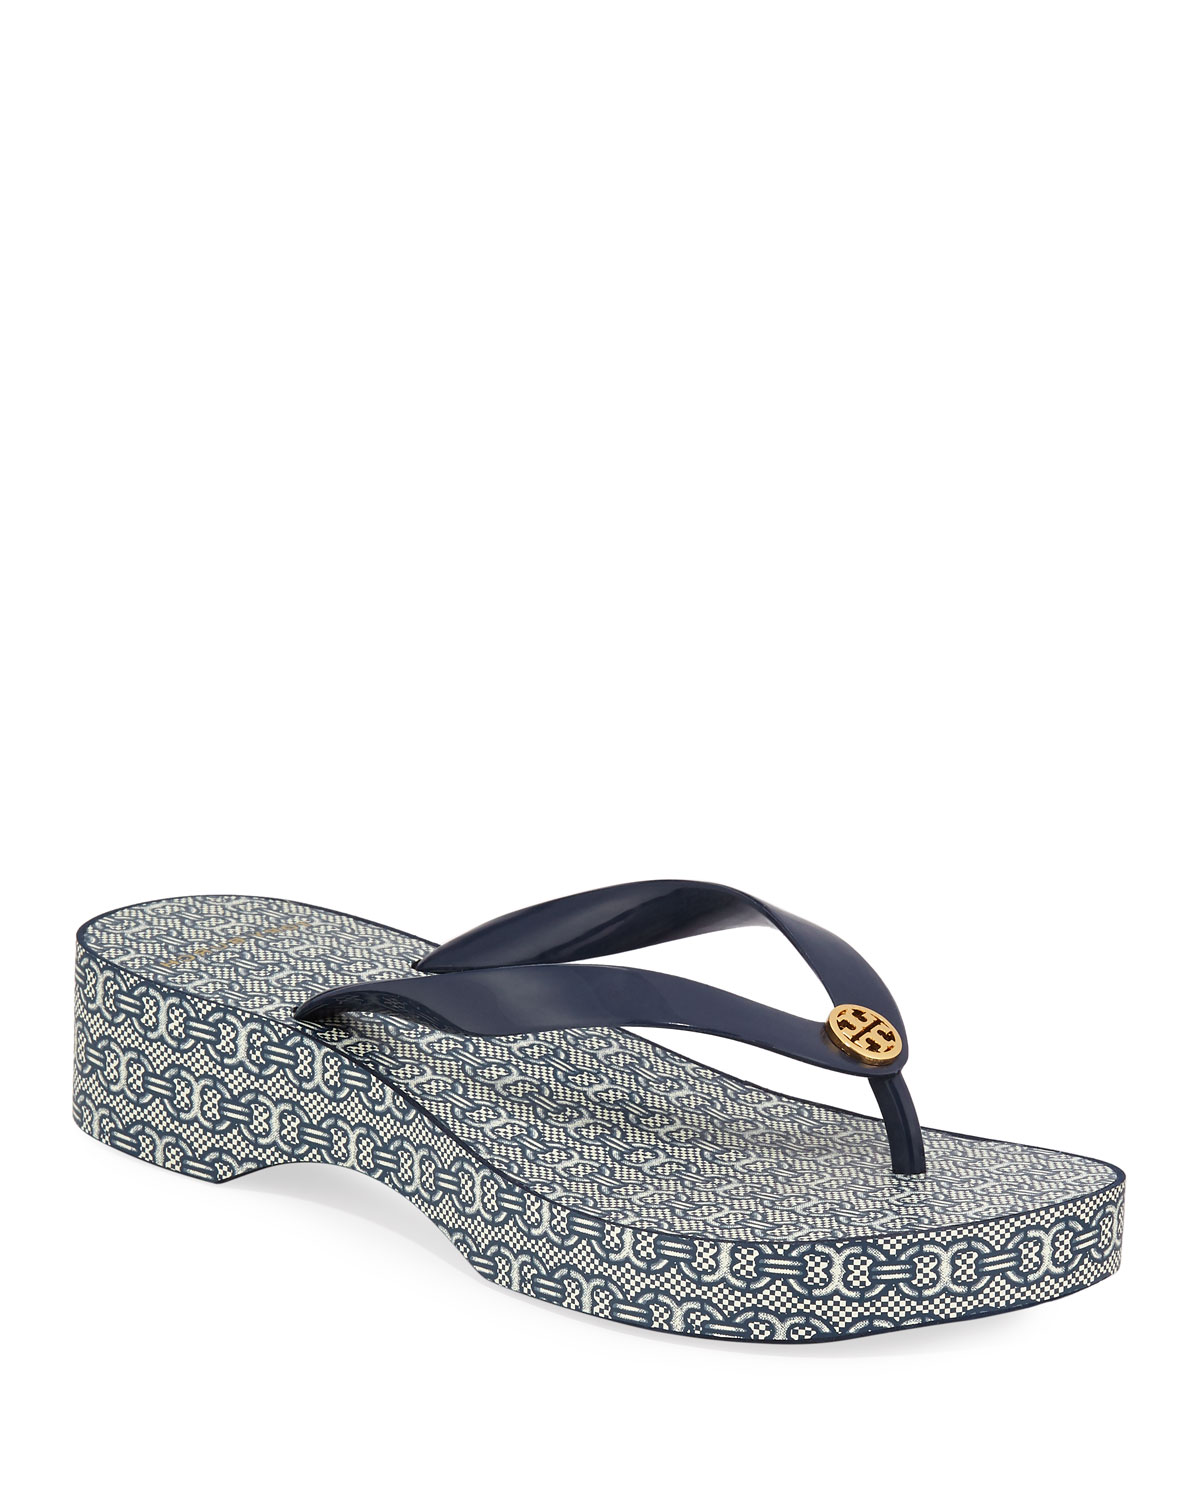 db87d7d1f3a6 Tory Burch Cutout Wedge Flip-Flop Sandals